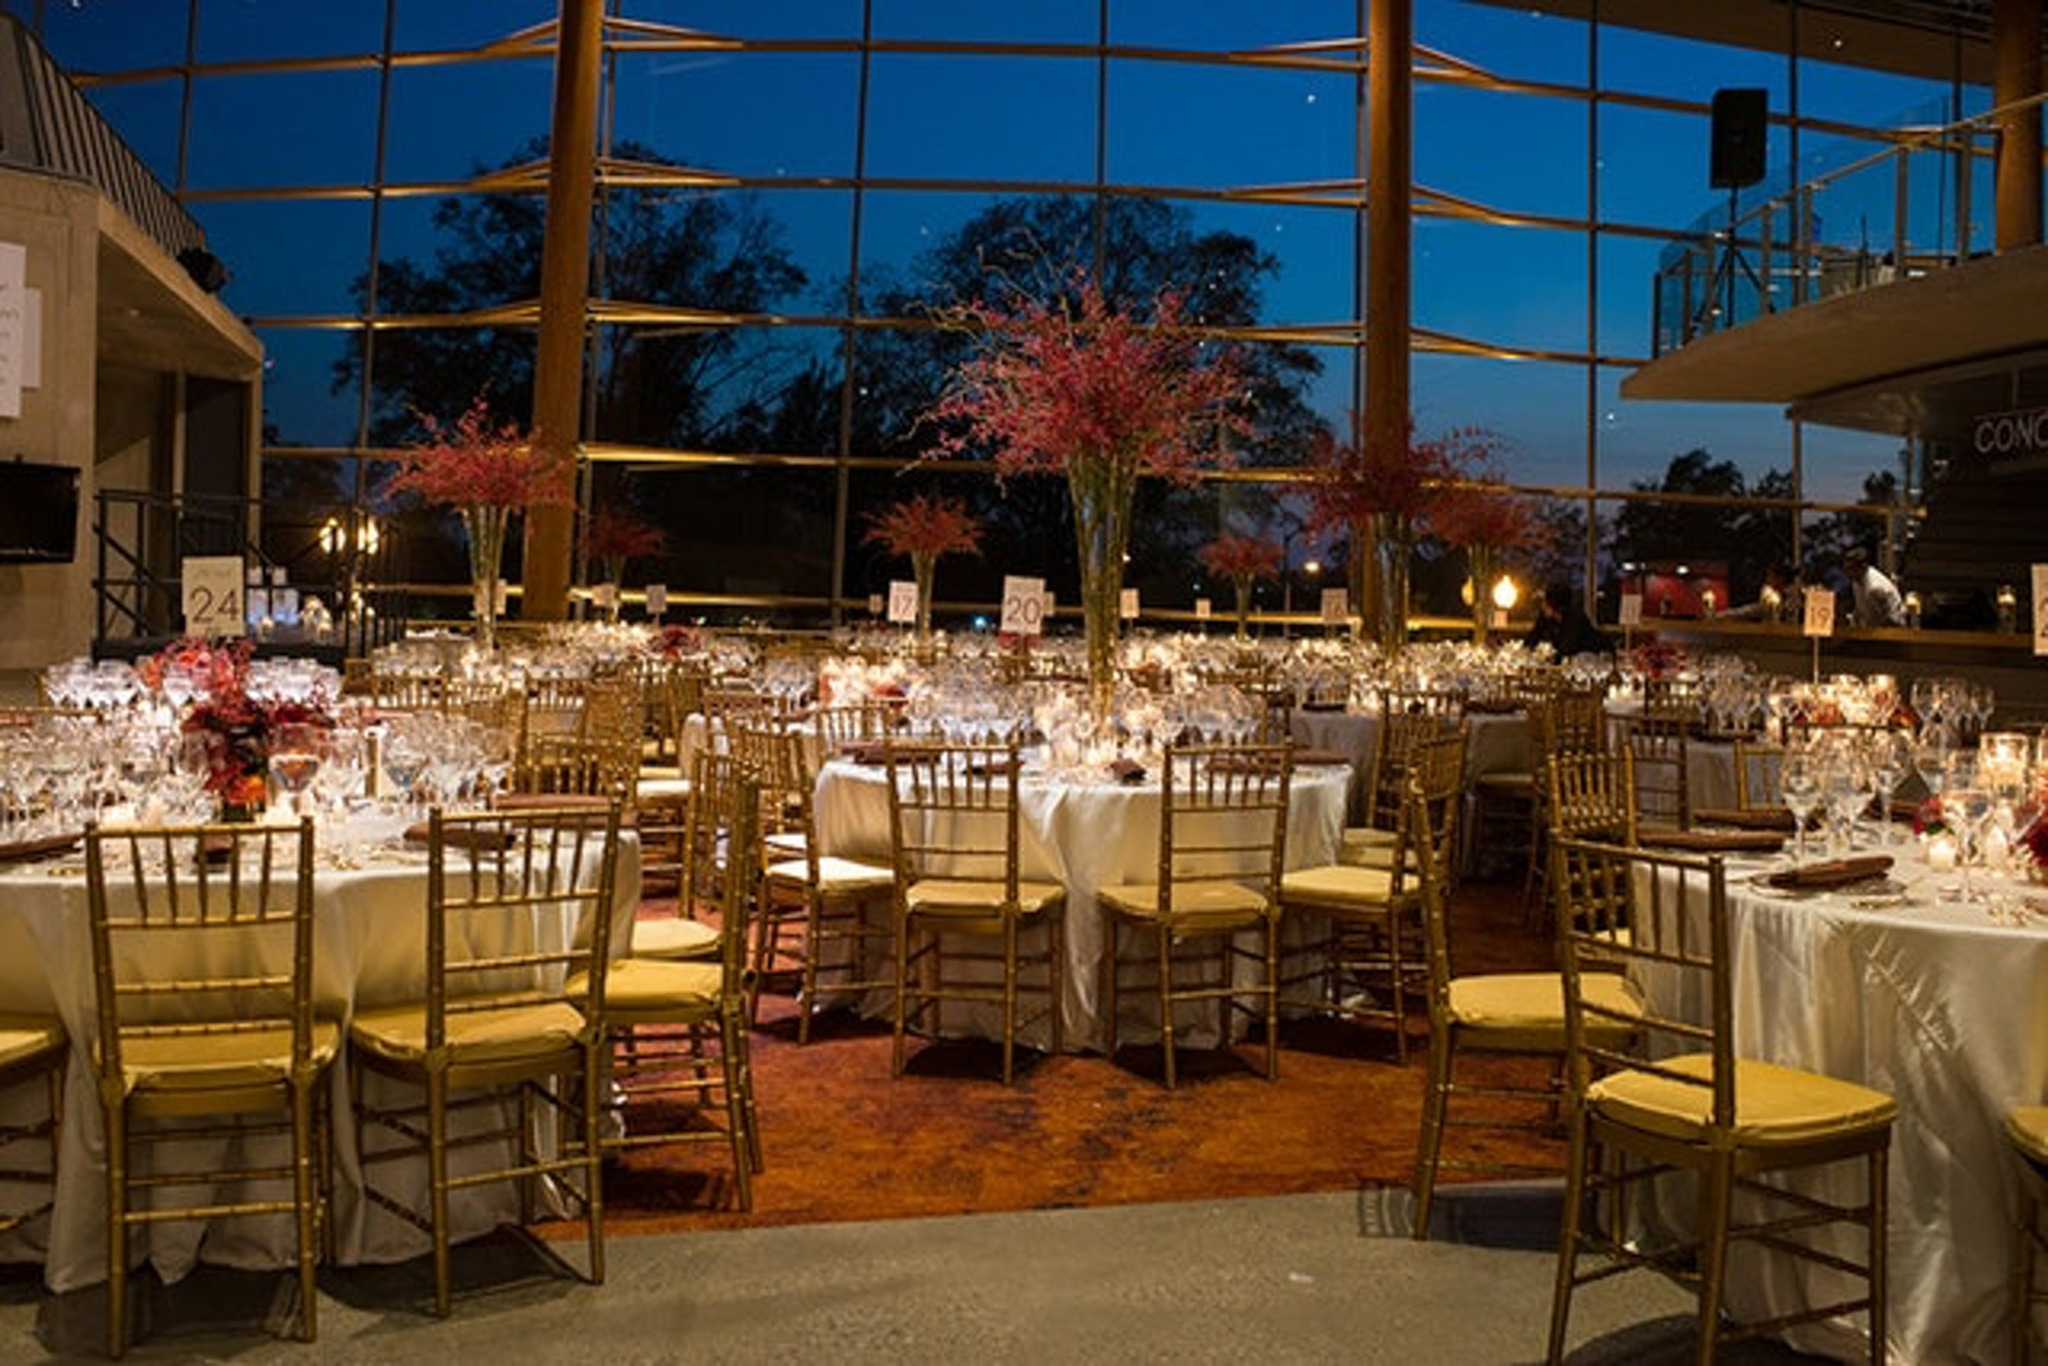 tall windows form walls at the arena stage at the mead center landmark event venue in washington, d.c.